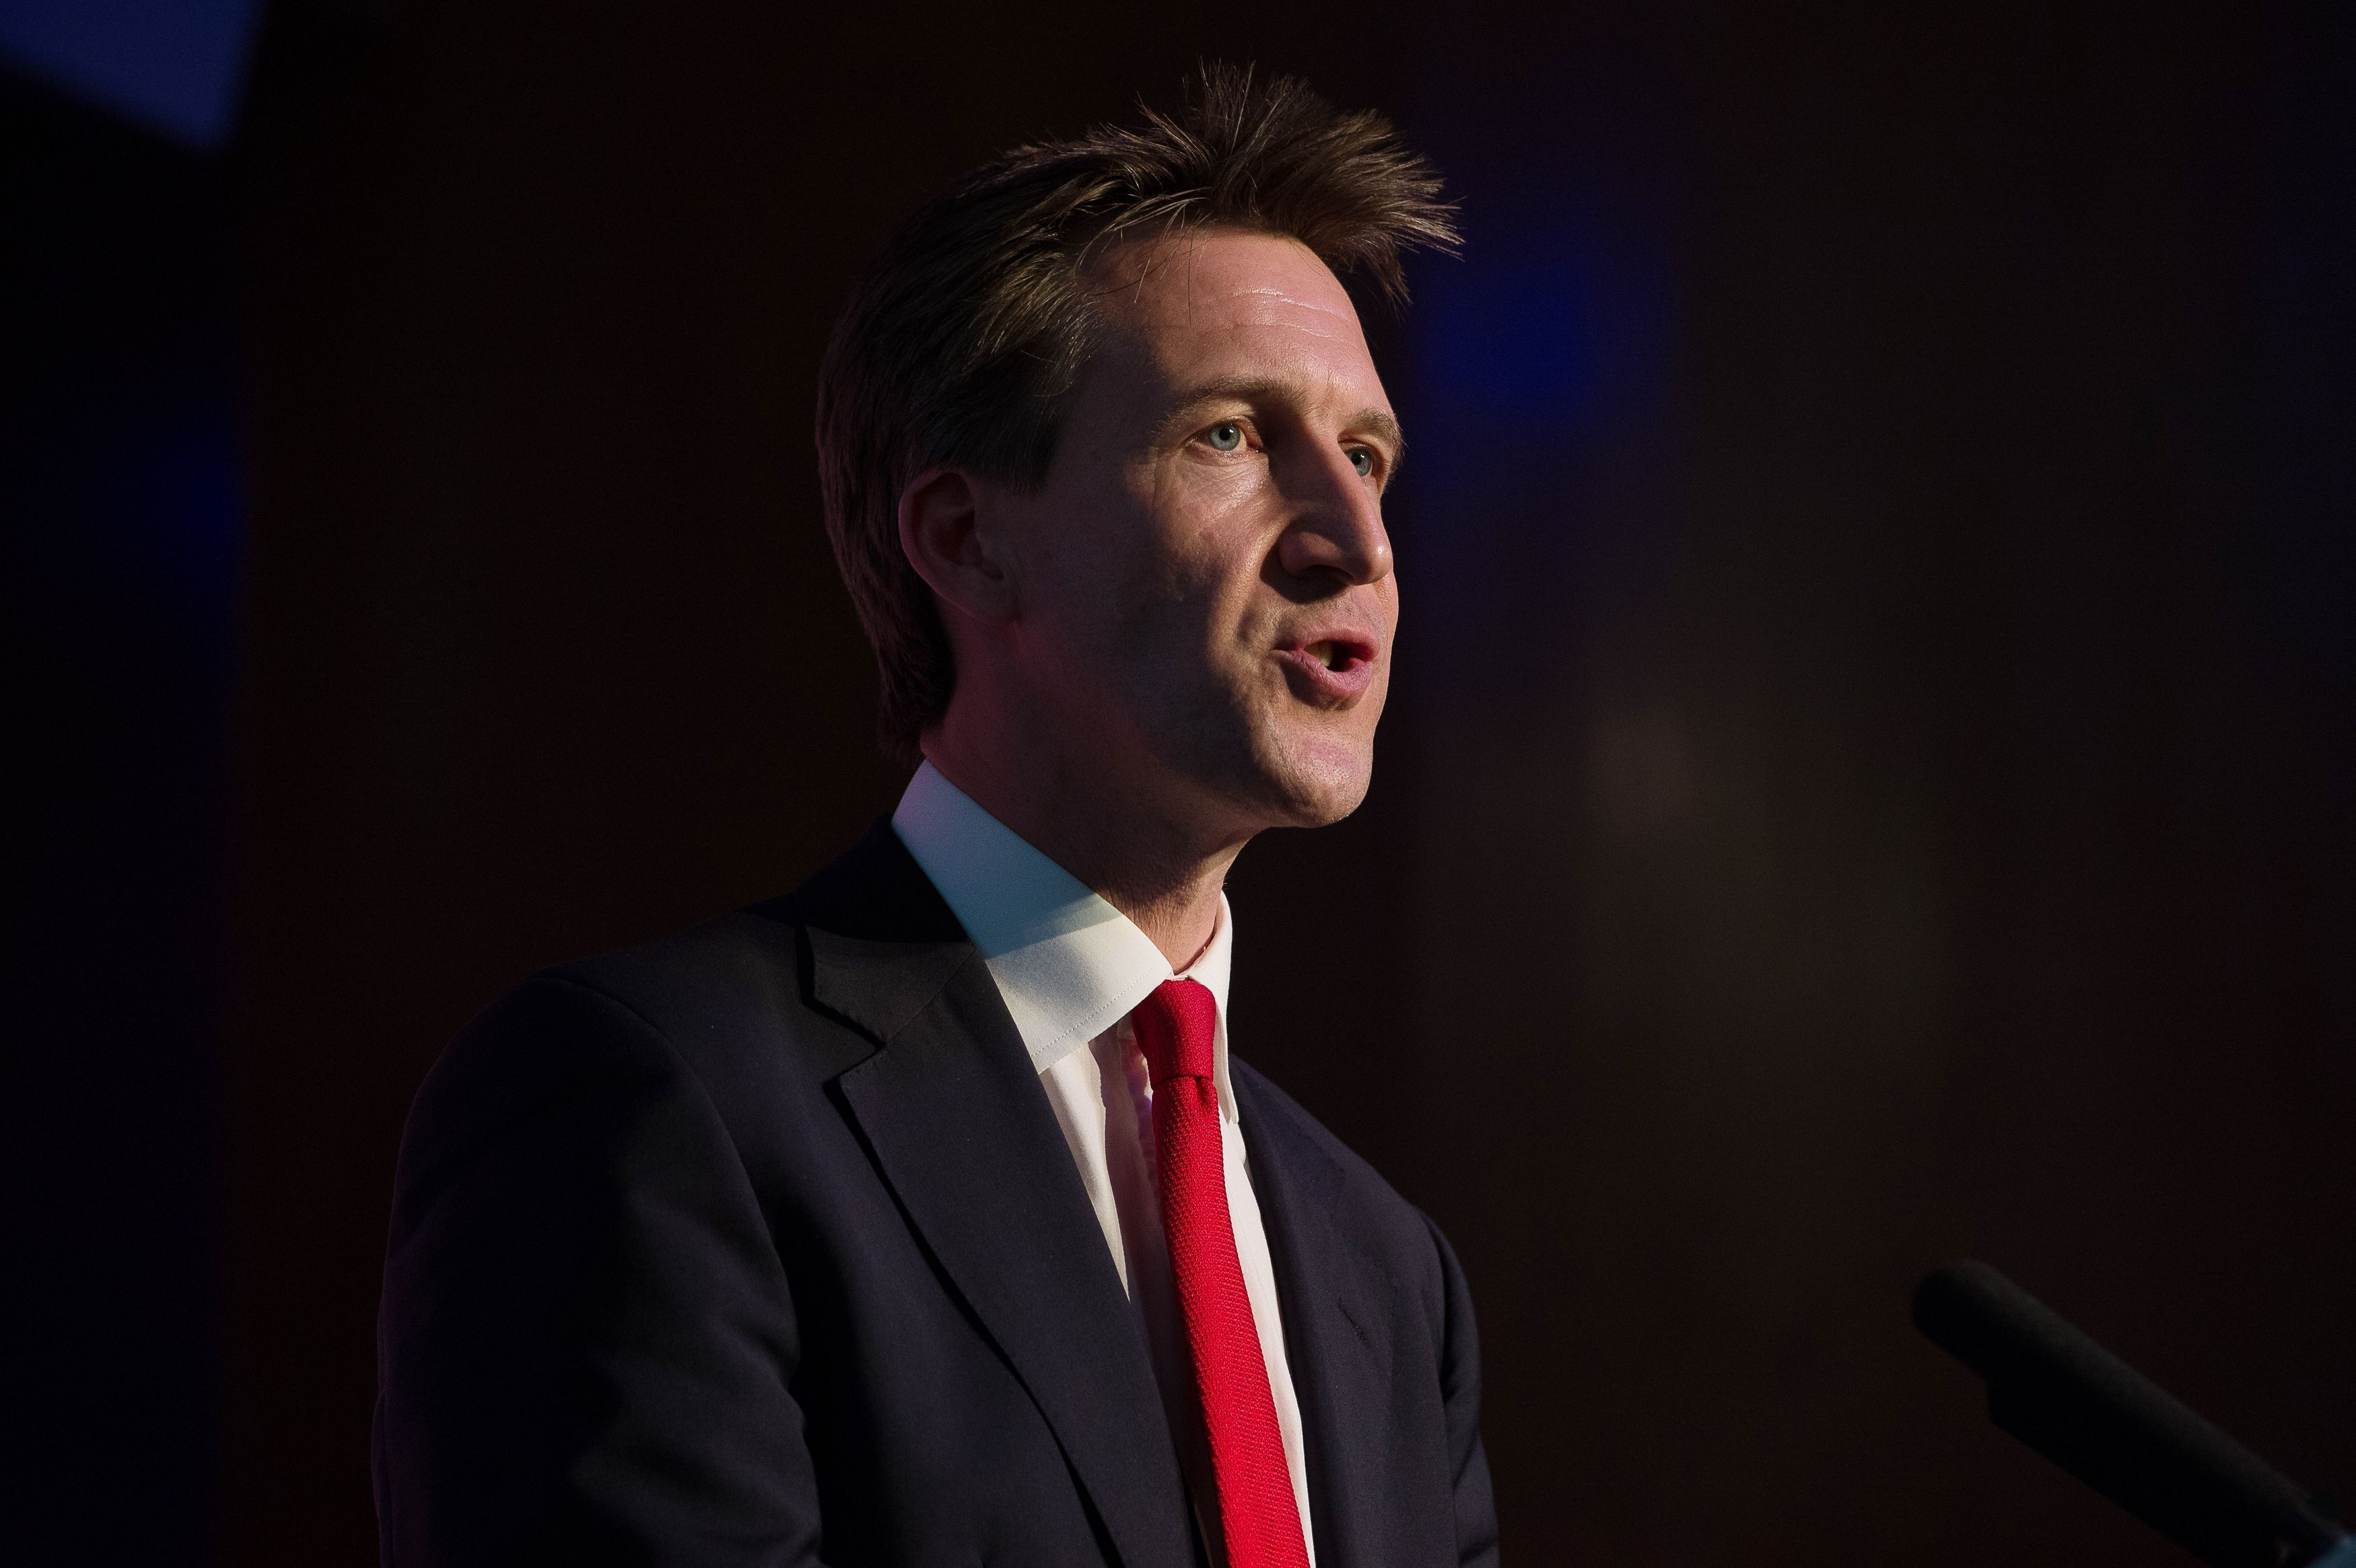 Mr Wood is hoping the Brexit Party candidates will unseat Labour's Dan Jarvis (pictured) and  Stephanie Peacock. (PA)